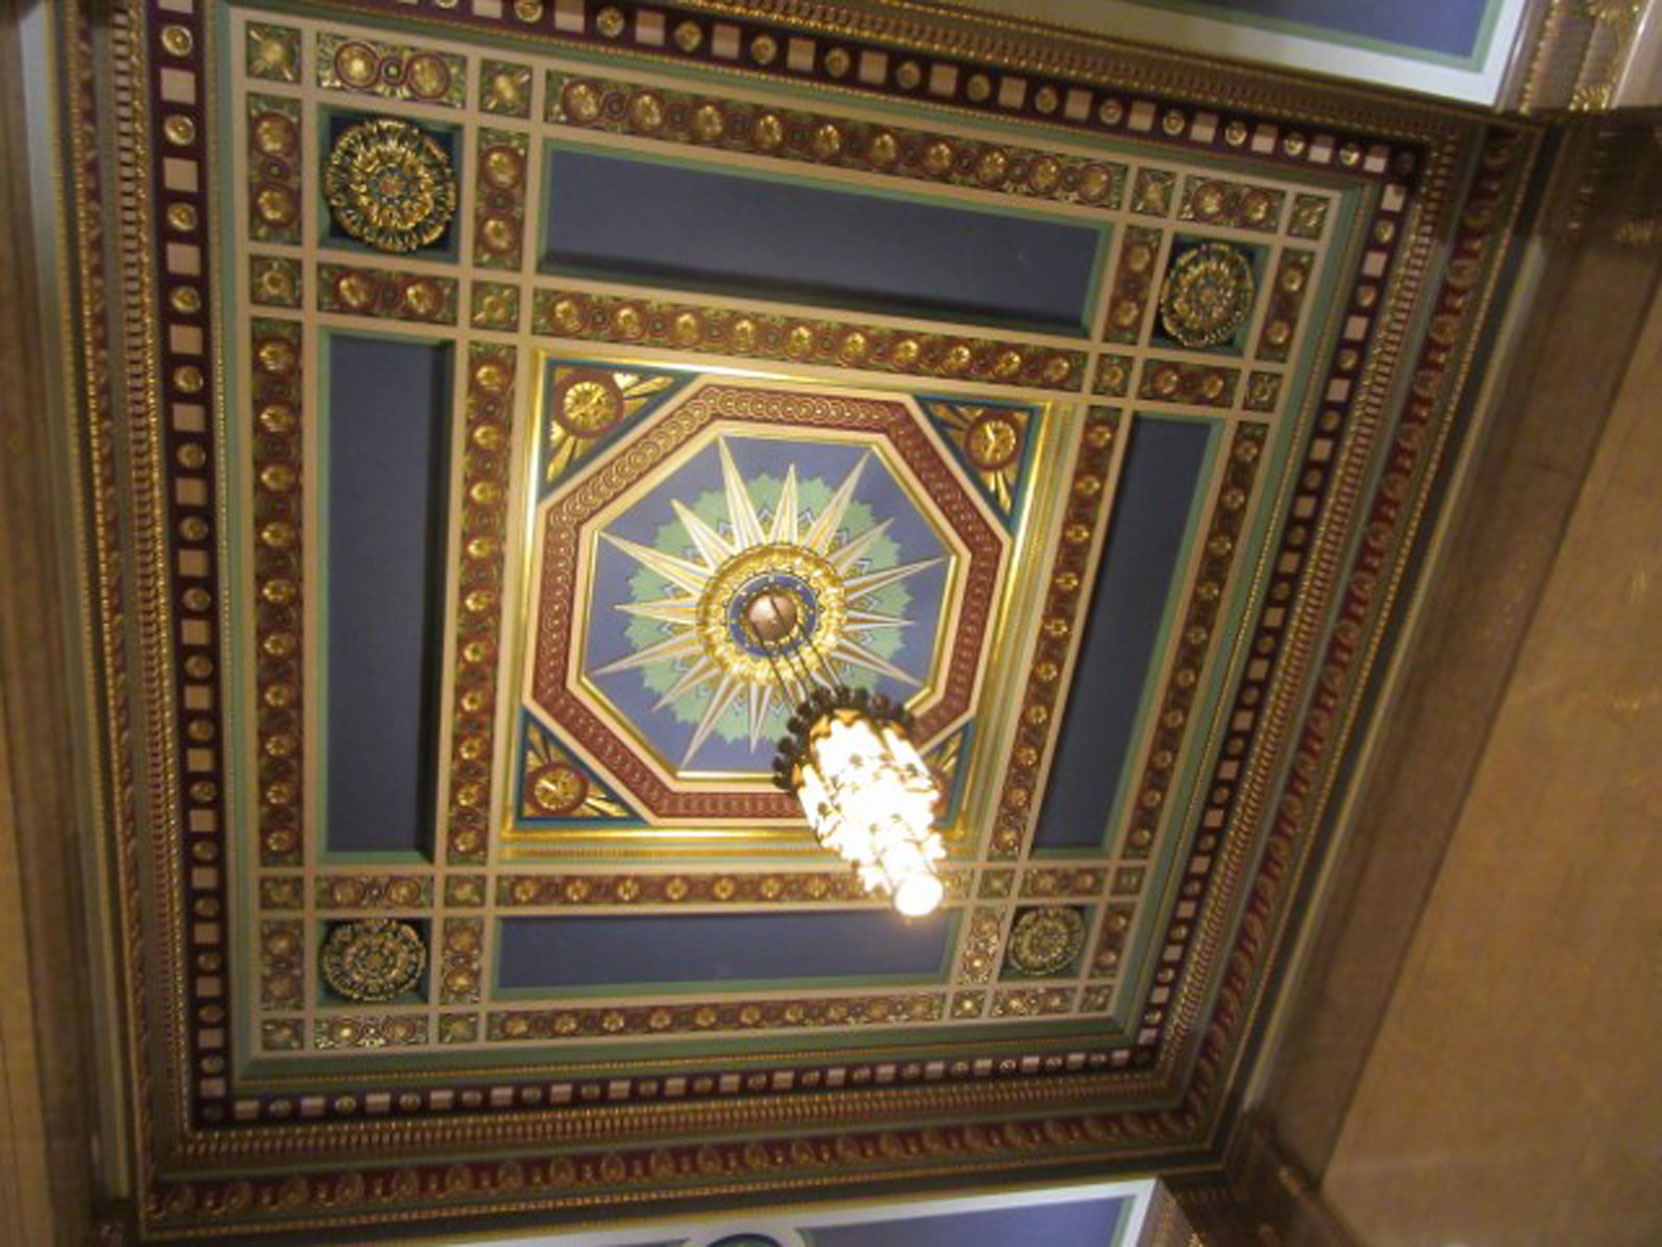 Main Hall Ceiling, Freemasons Hall, London, UK, July 2018 (photo by Paul Philcox)